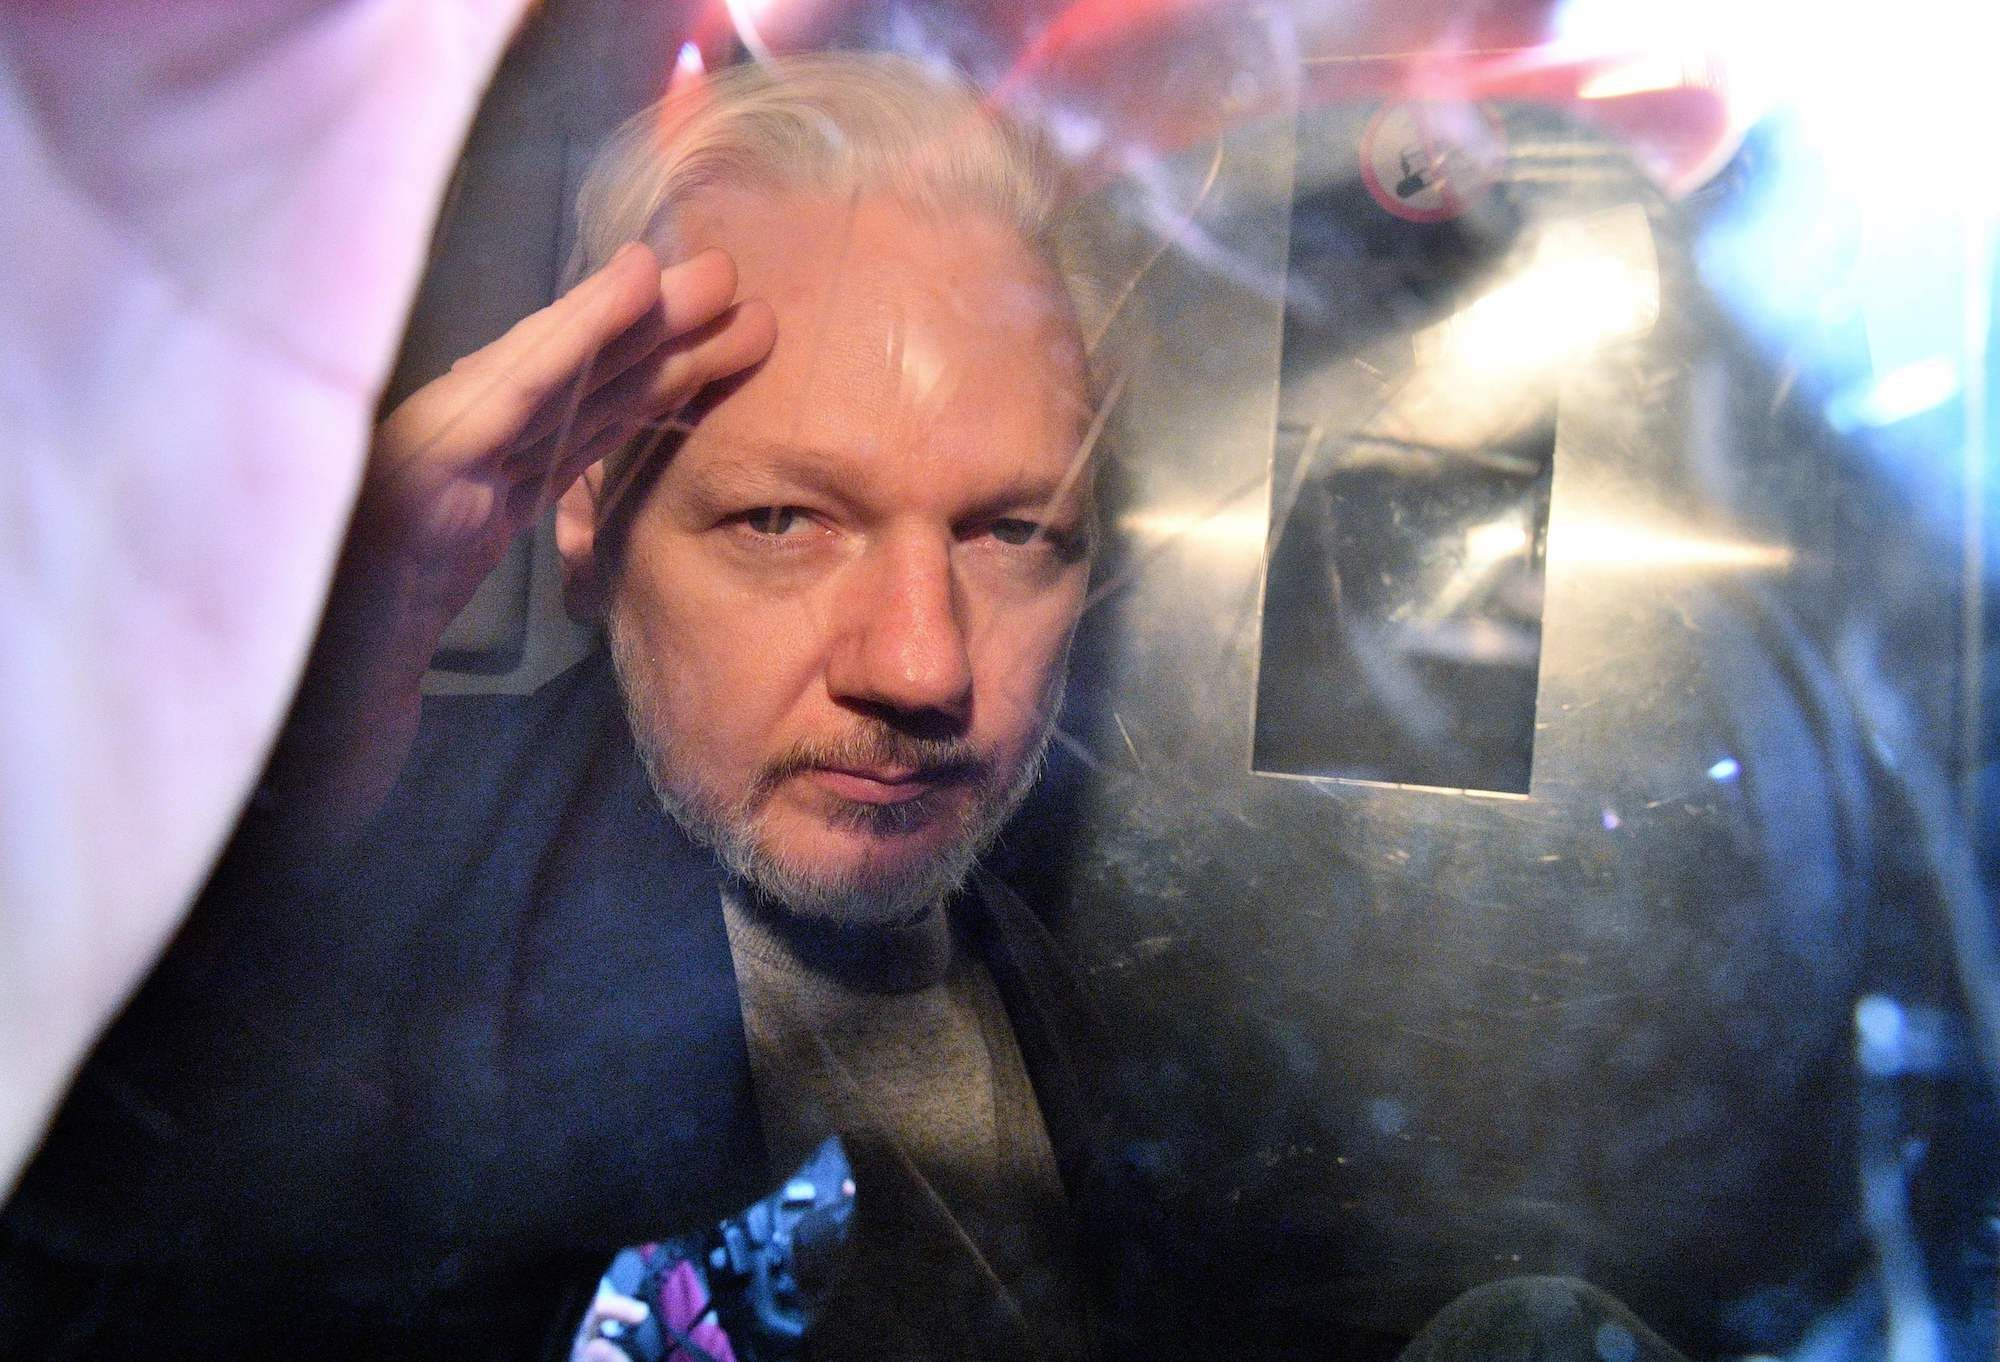 Julian Assange Saw the Gallows in His Eyes and Tried to Make a Devil's Bargain